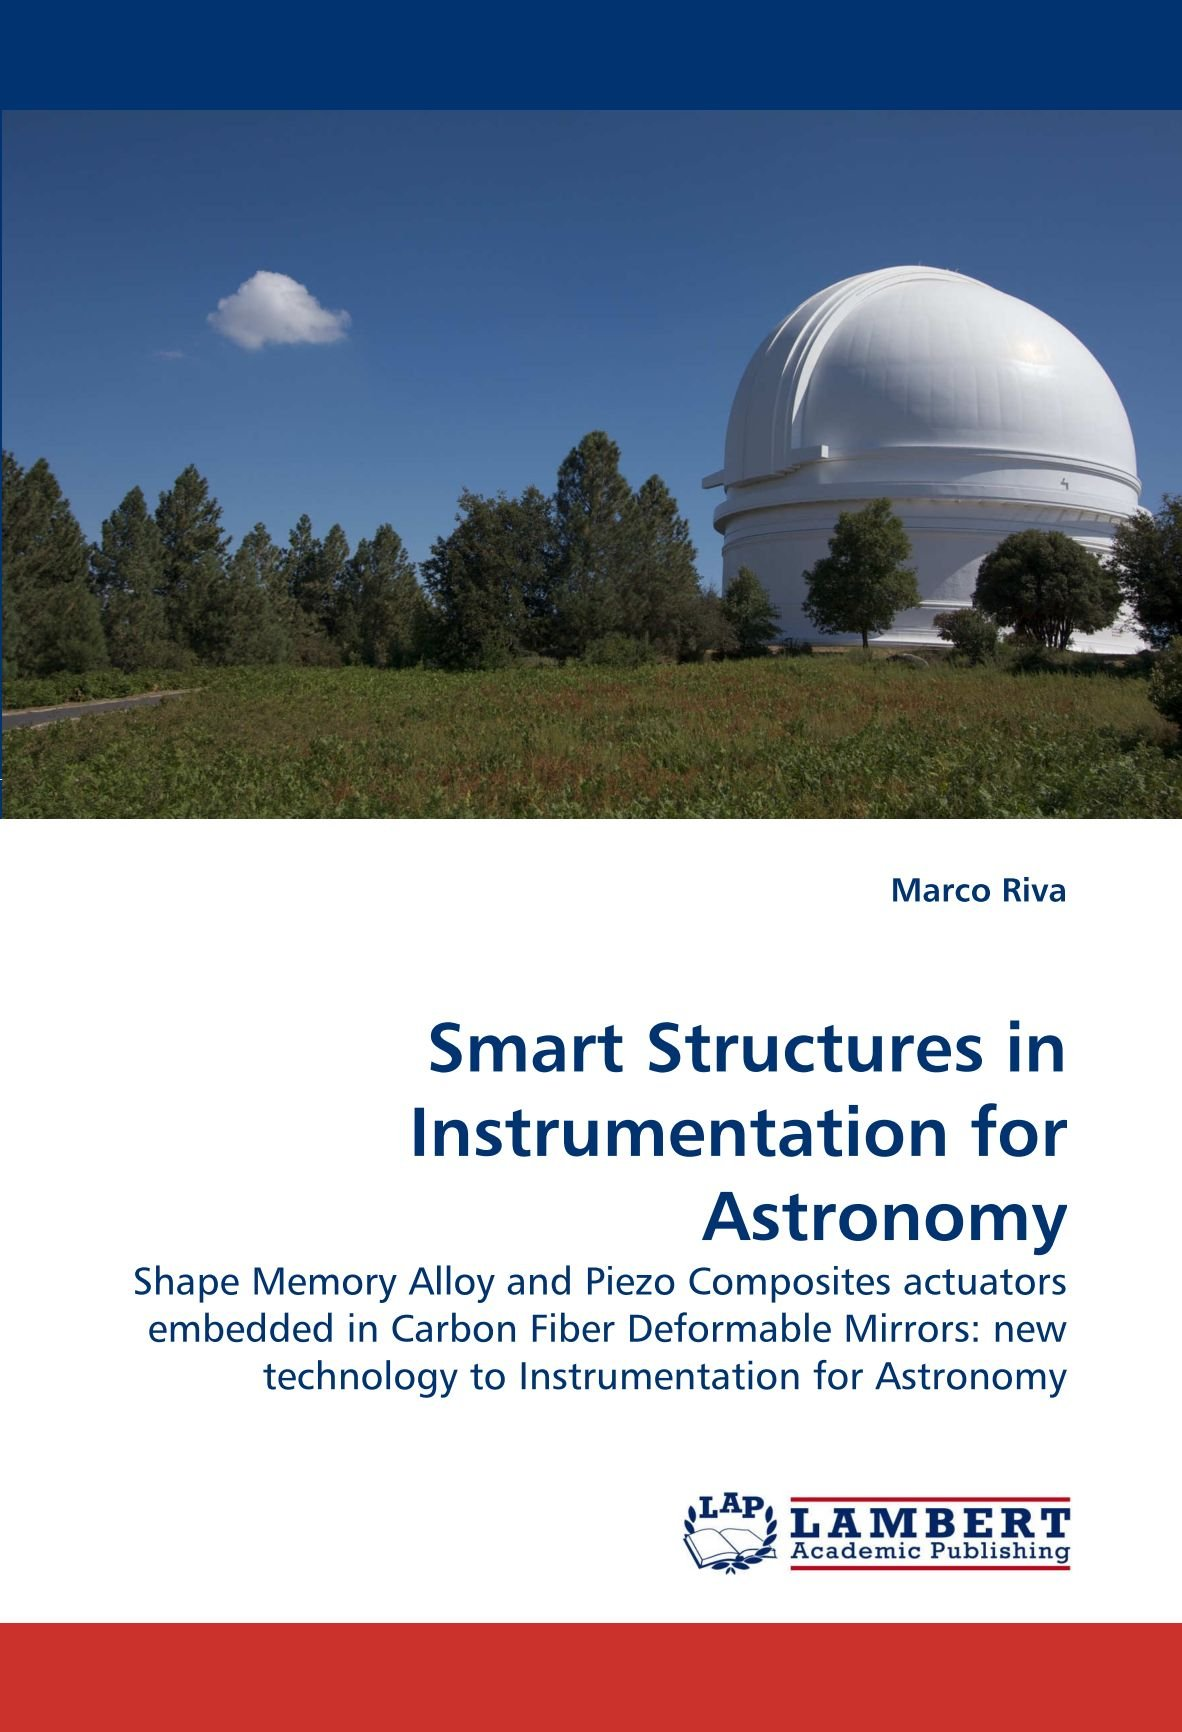 Smart Structures in Instrumentation for Astronomy: Shape Memory